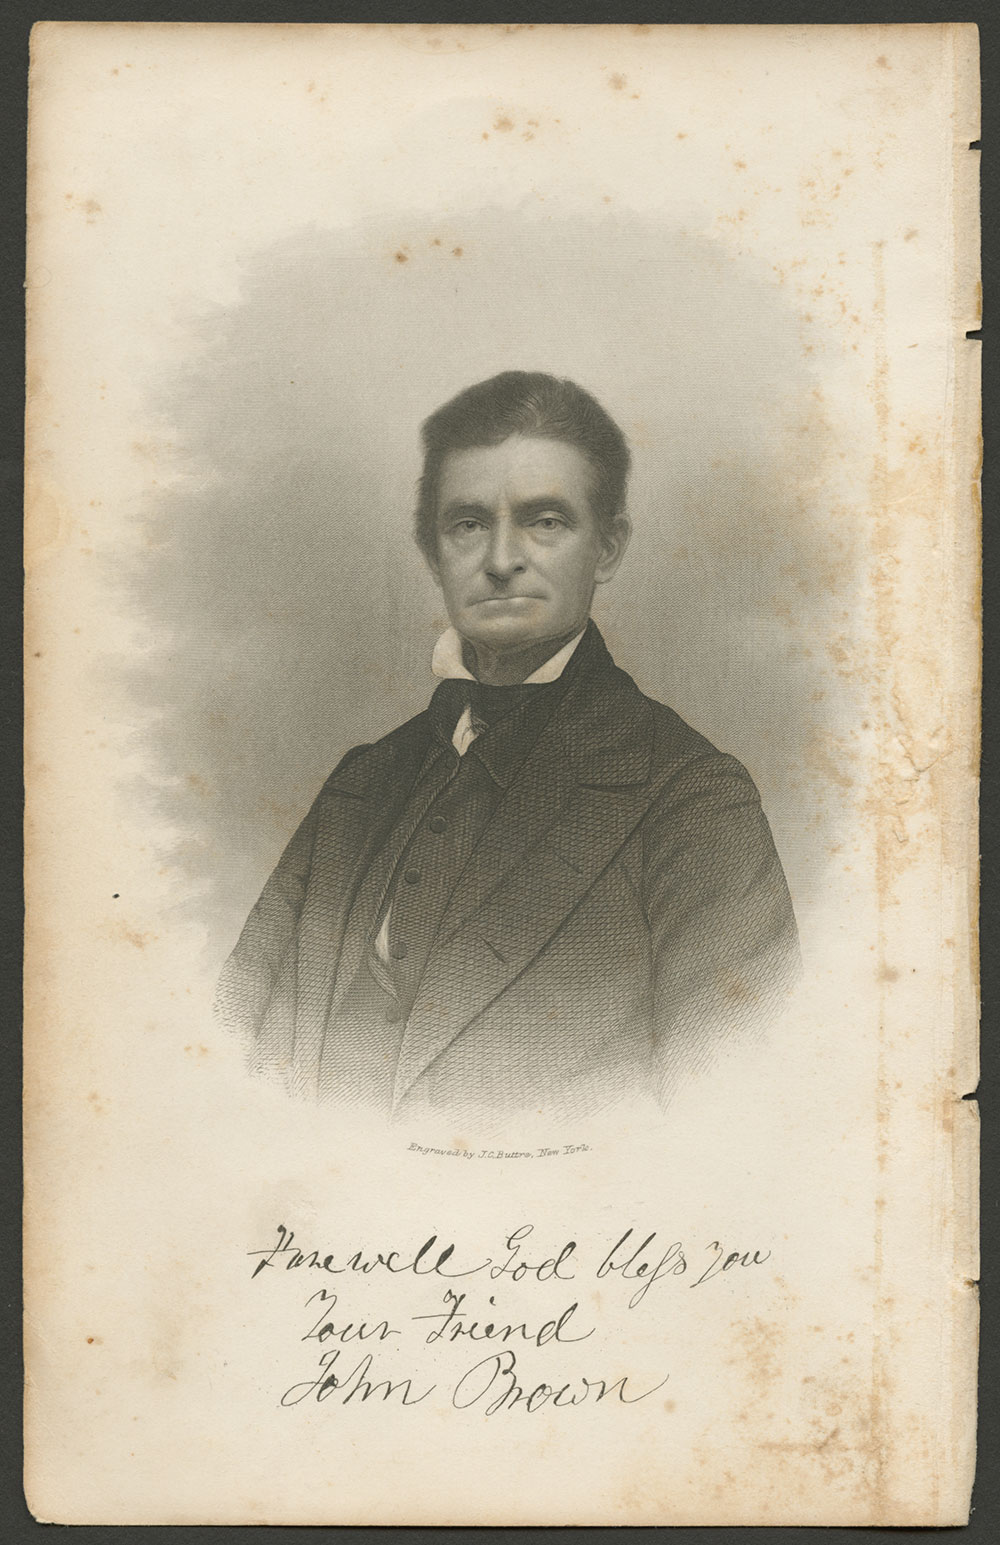 essay on john brown abolitionist Essay primary sources chicago  the impractical john brown,  even the rank and file of the union army channeled brown's abolitionist spirit as they marched.